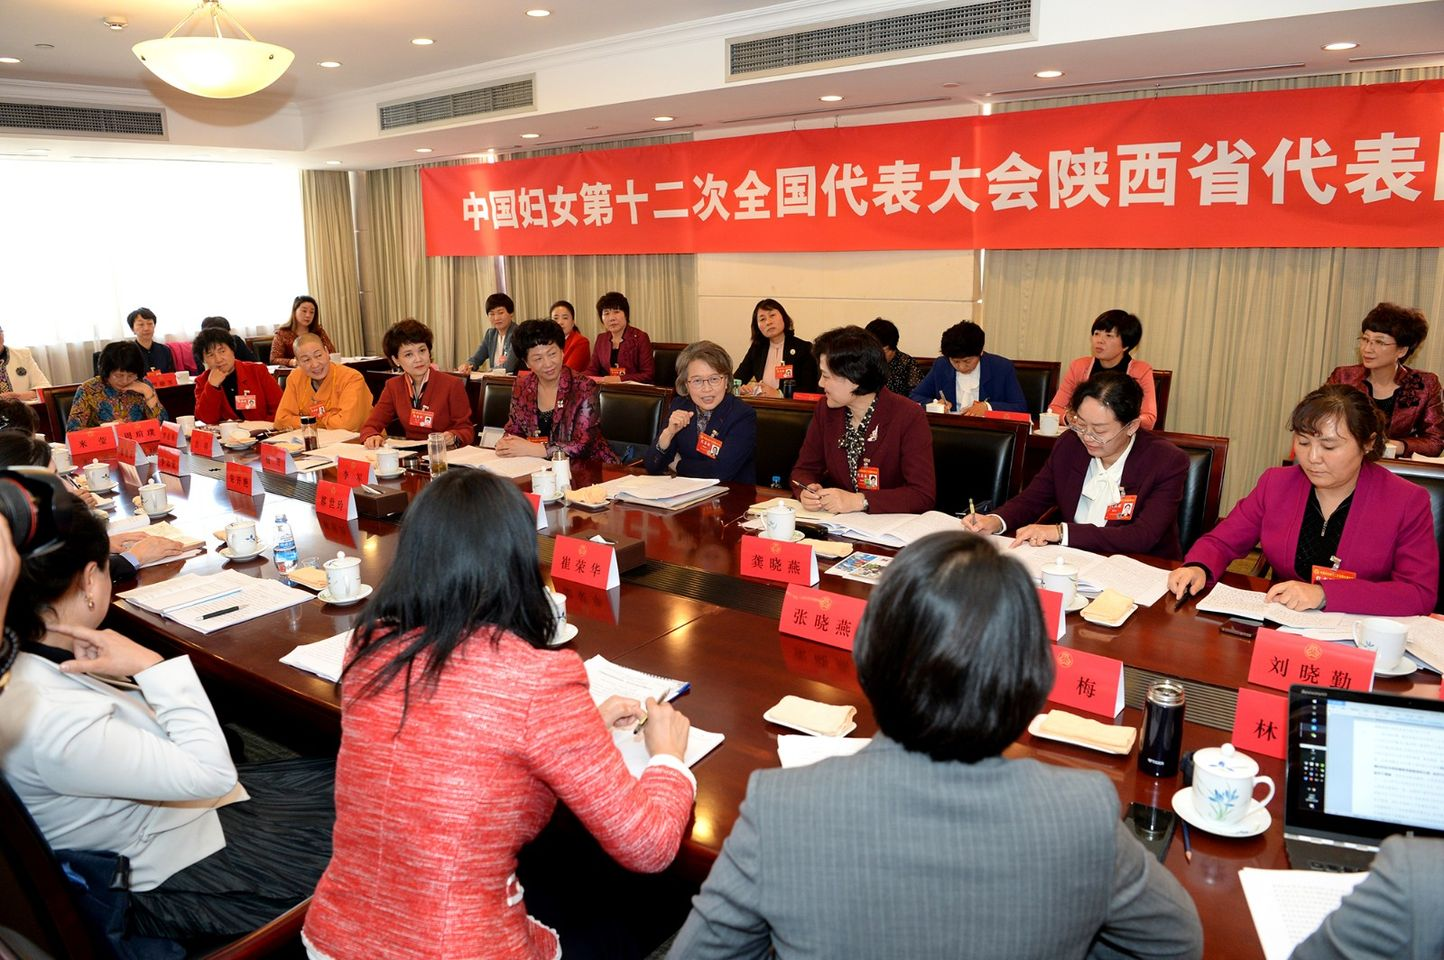 ACWF VP Attends Meeting of Shaanxi Delegation